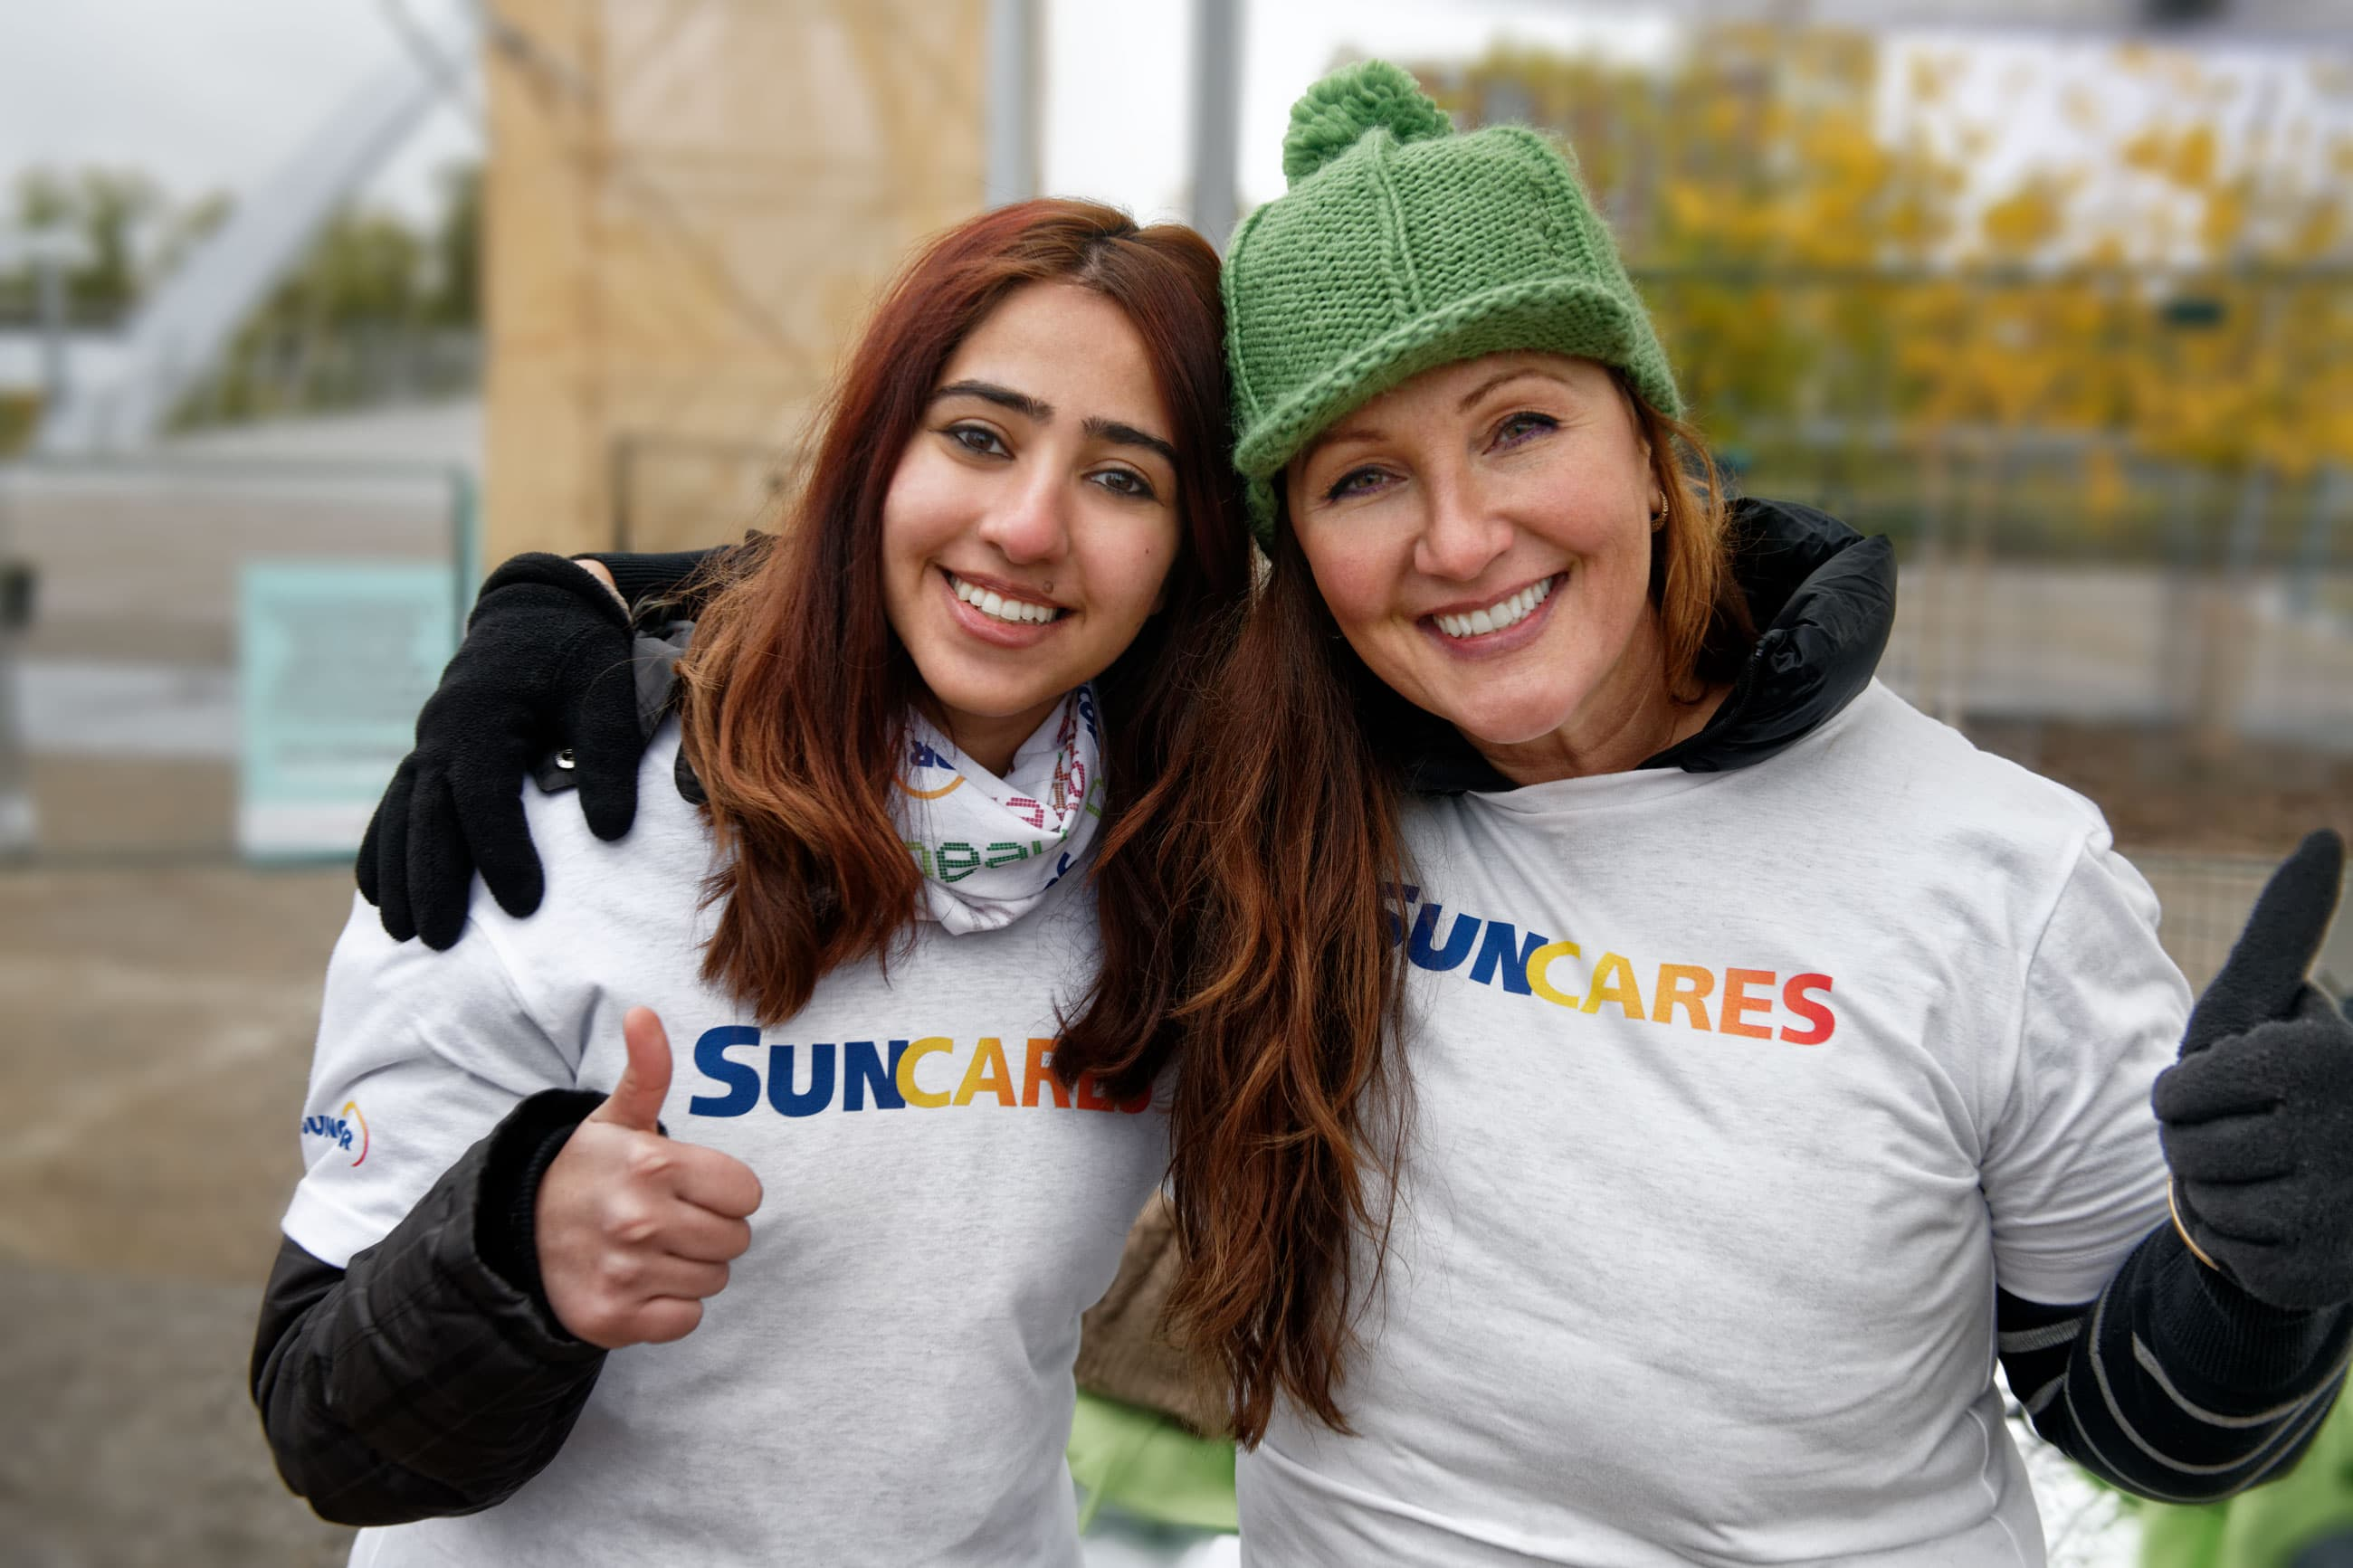 SunCares volunteers in the community